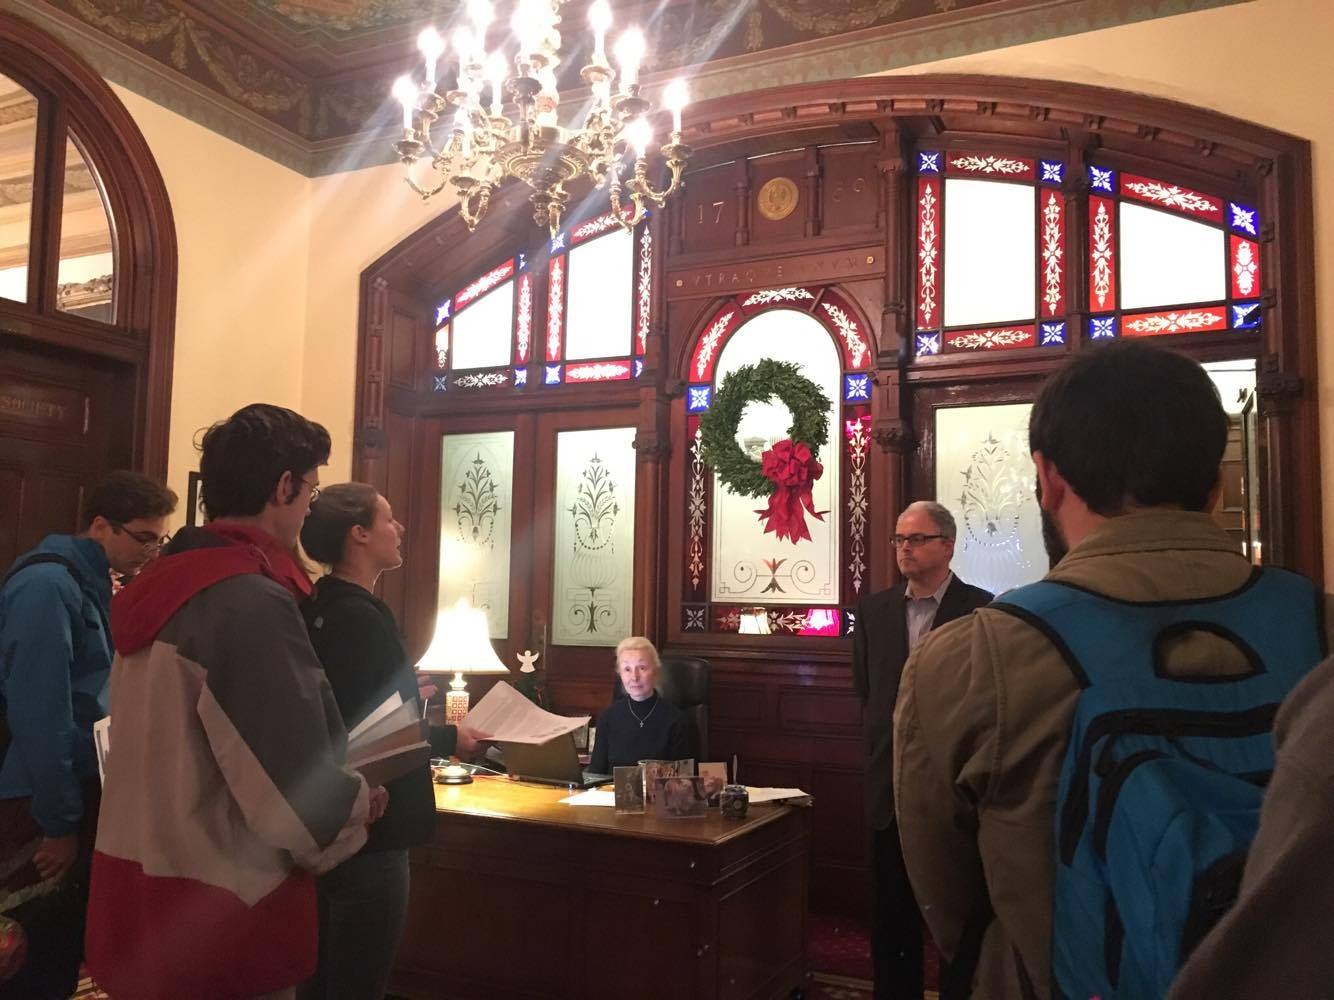 JEANINE SANTUCCI/THE HOYA About 10 students from the Georgetown Solidarity Committee delivered a letter yesterday to Chief of Staff Joseph Ferrara demanding the university end its contract with Nike by the end of business hours today.